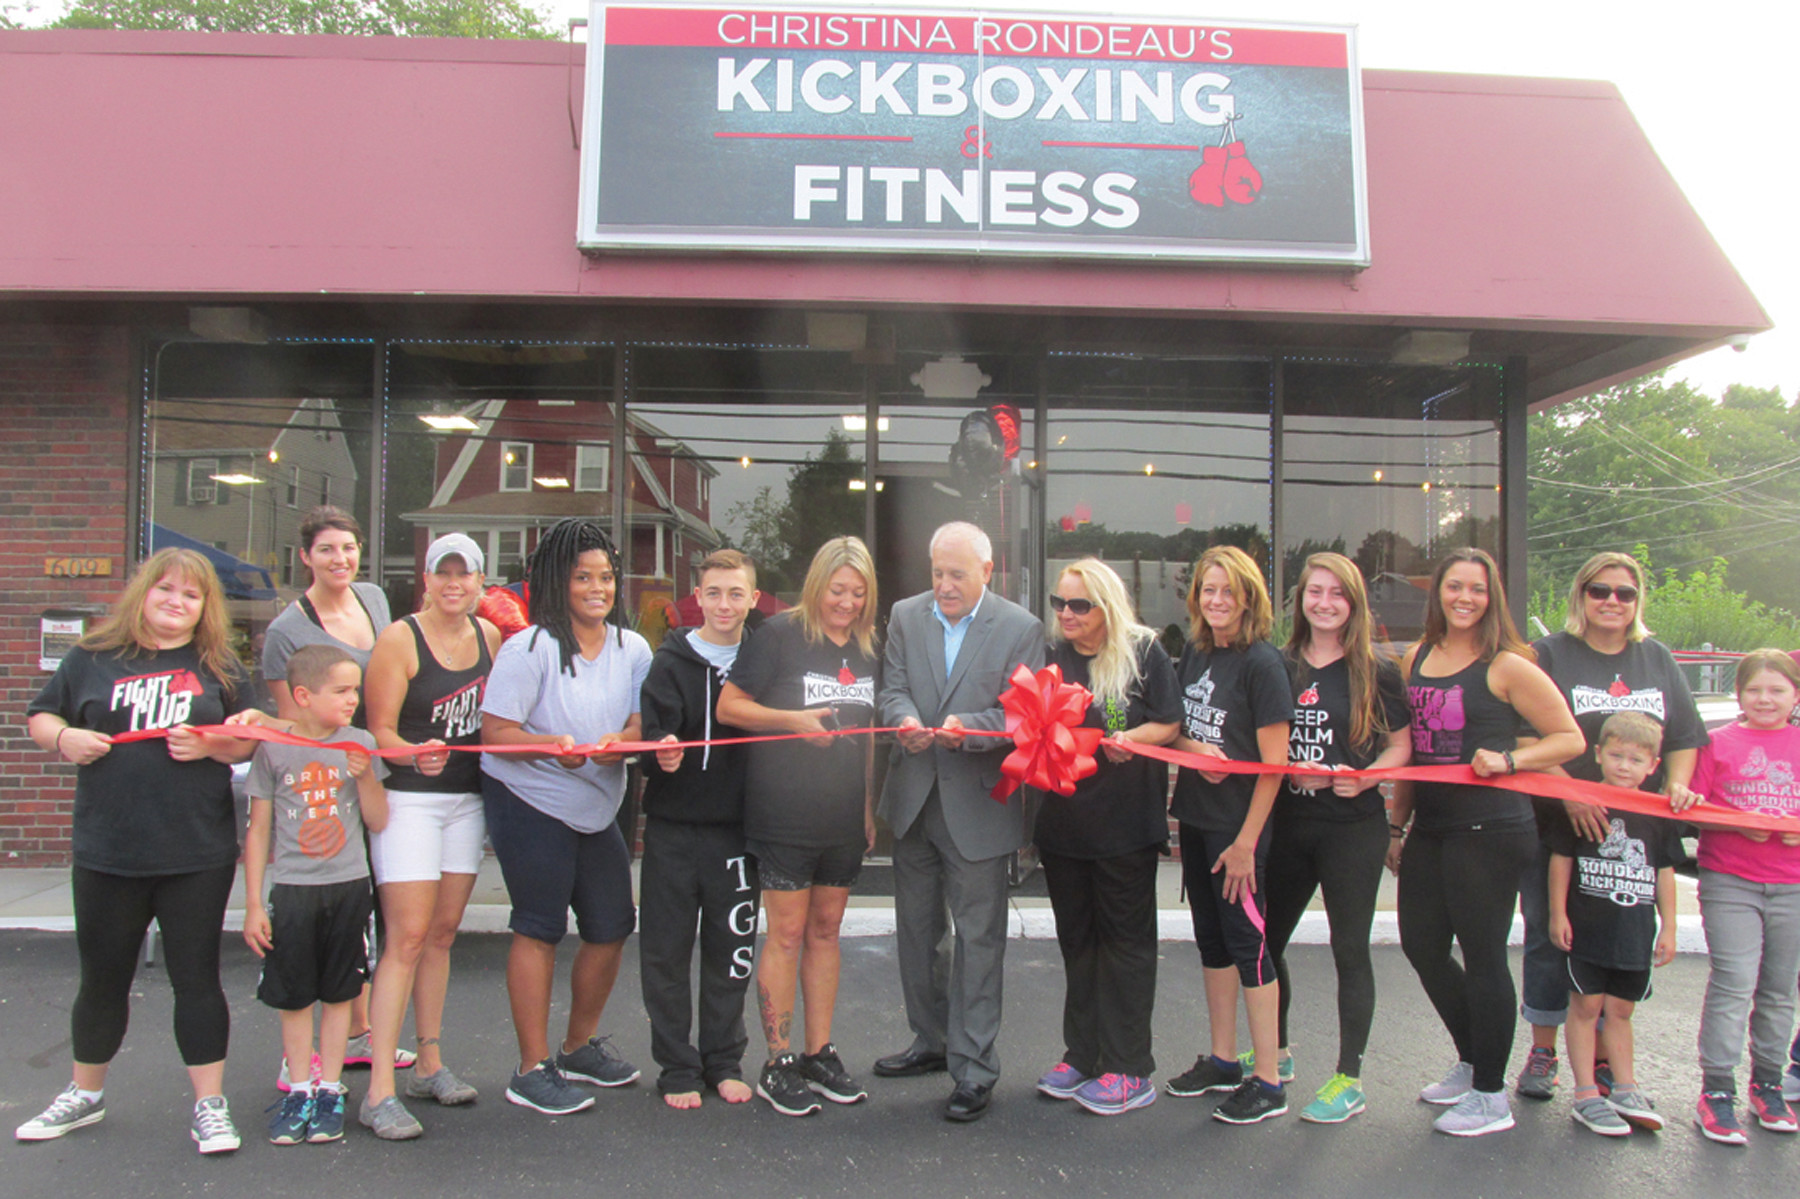 SUPER STAFF: The expert staff of Rondeau's Kickboxing and Fitness joined owner Christina Rondeau and Mayor Joseph Polisena for Saturday's official opening of her new location at 609 Killingly Street.